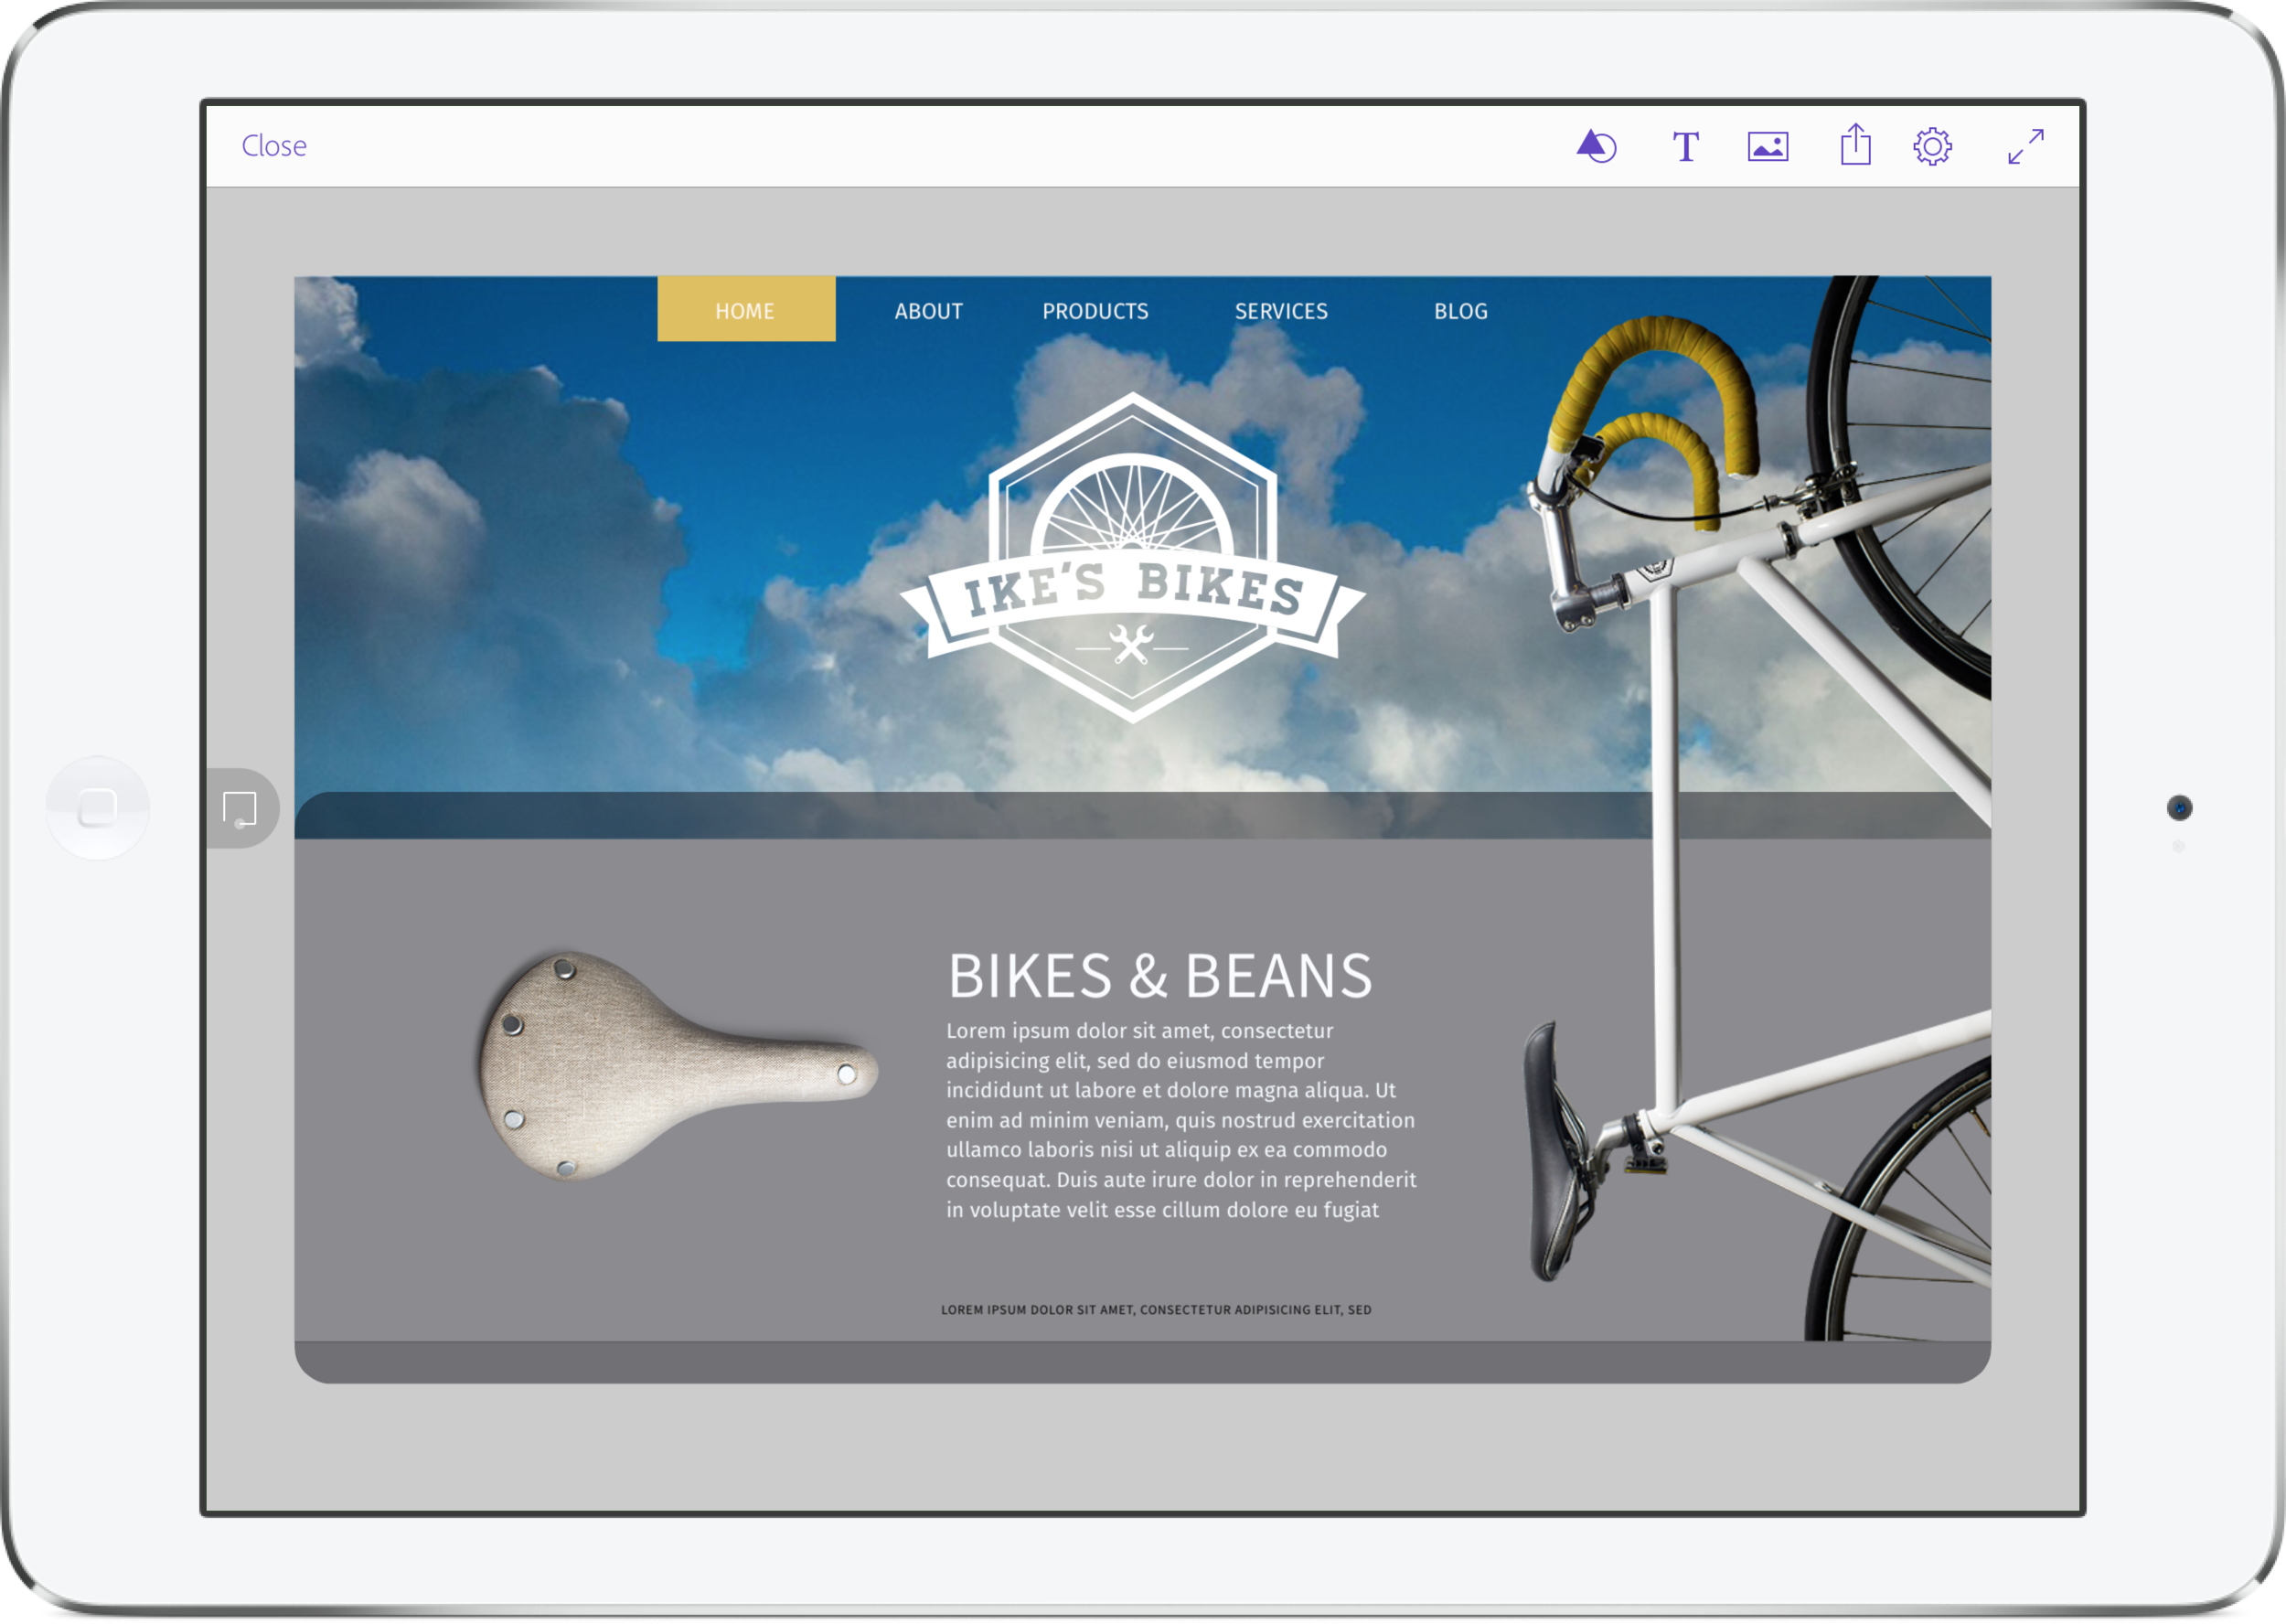 Starting a new design project is easier with Adobe's new Comp CC app for iPad